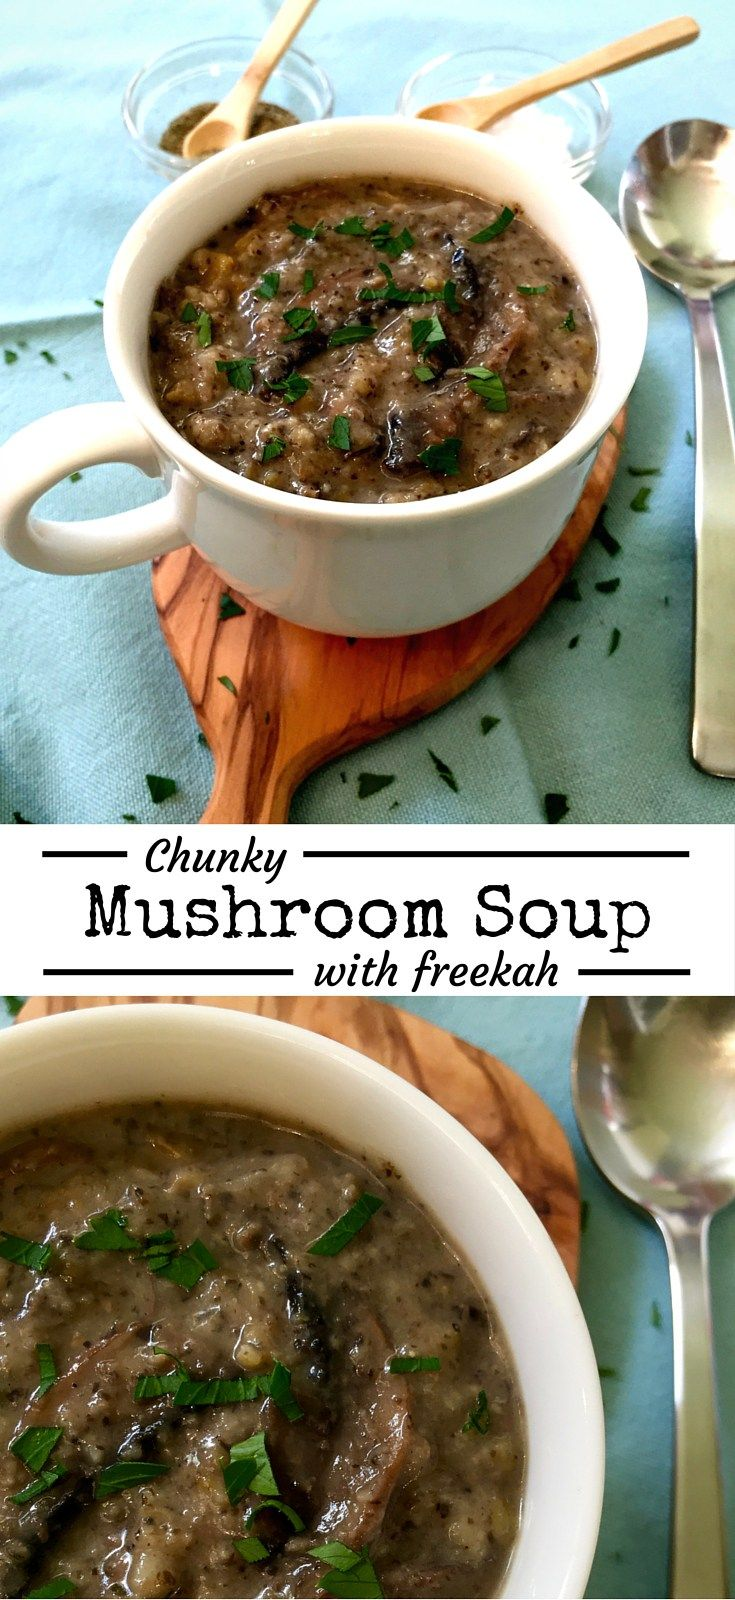 Rich delicious mushroom soup made into a meal with hearty freekah. Chunky and filling, this delicious vegan soup is real comfort food. A family favourite! #soup #comfortfood #grains #vegan